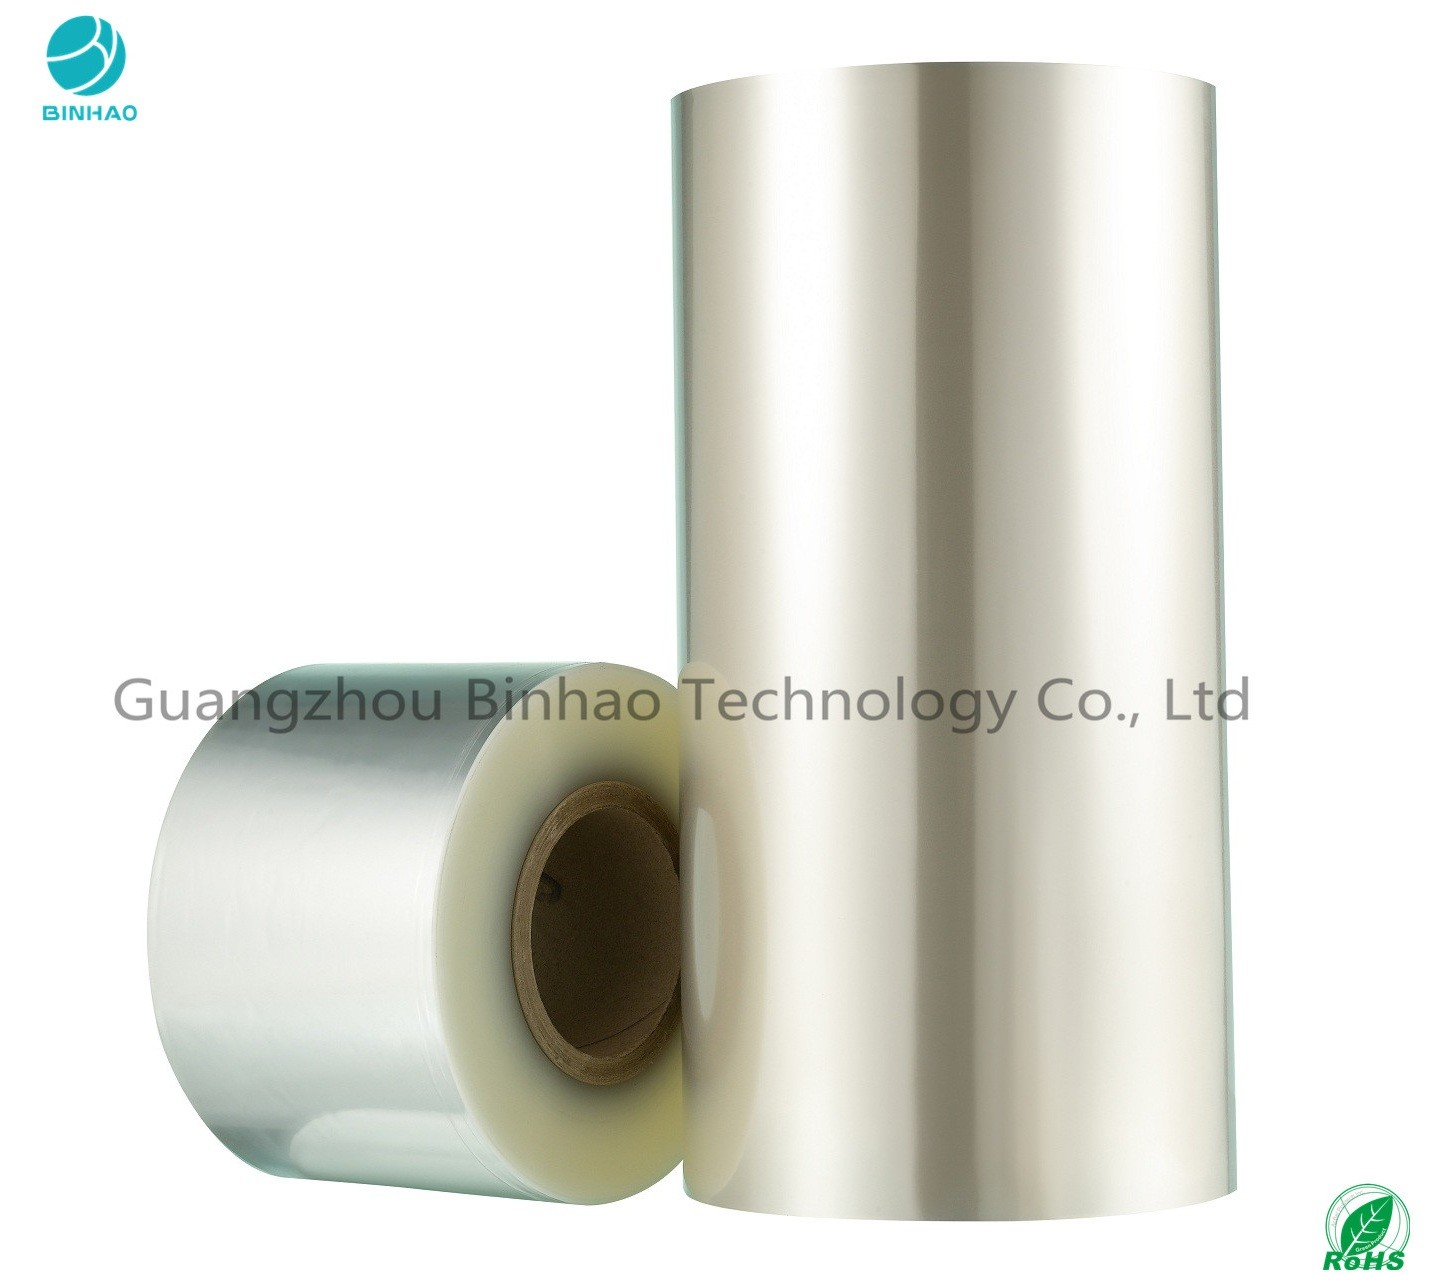 20 Micron Clear BOPP Heat Sealable Packaging Film In High Shrinkage / Cigarette Box Packaging